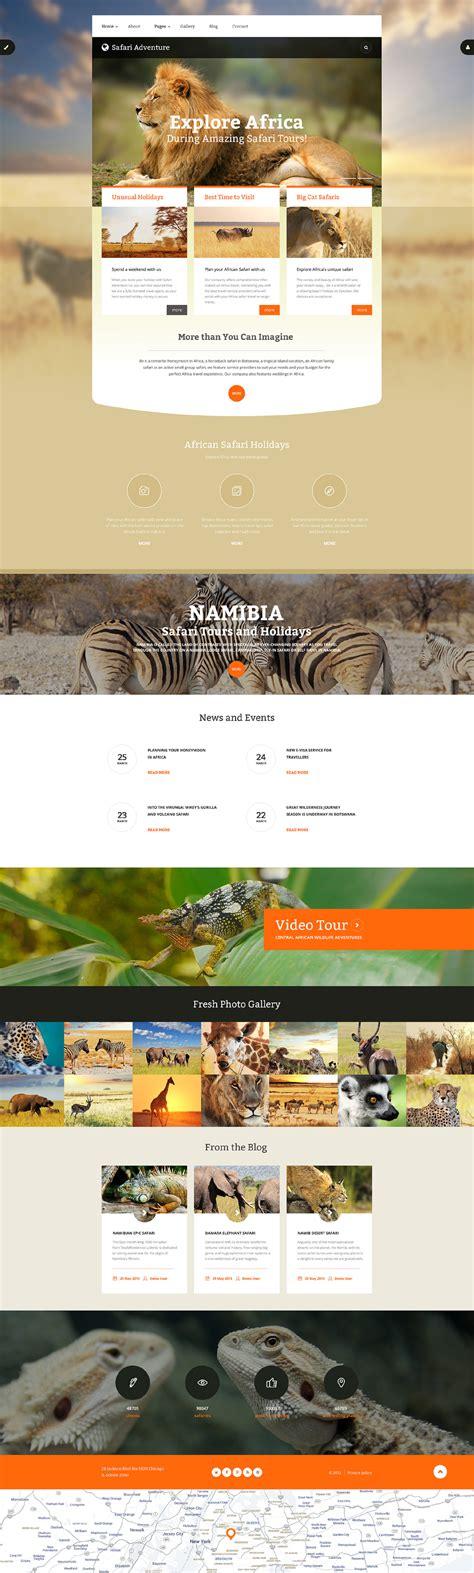 Safari Joomla Template Adventure Website Templates